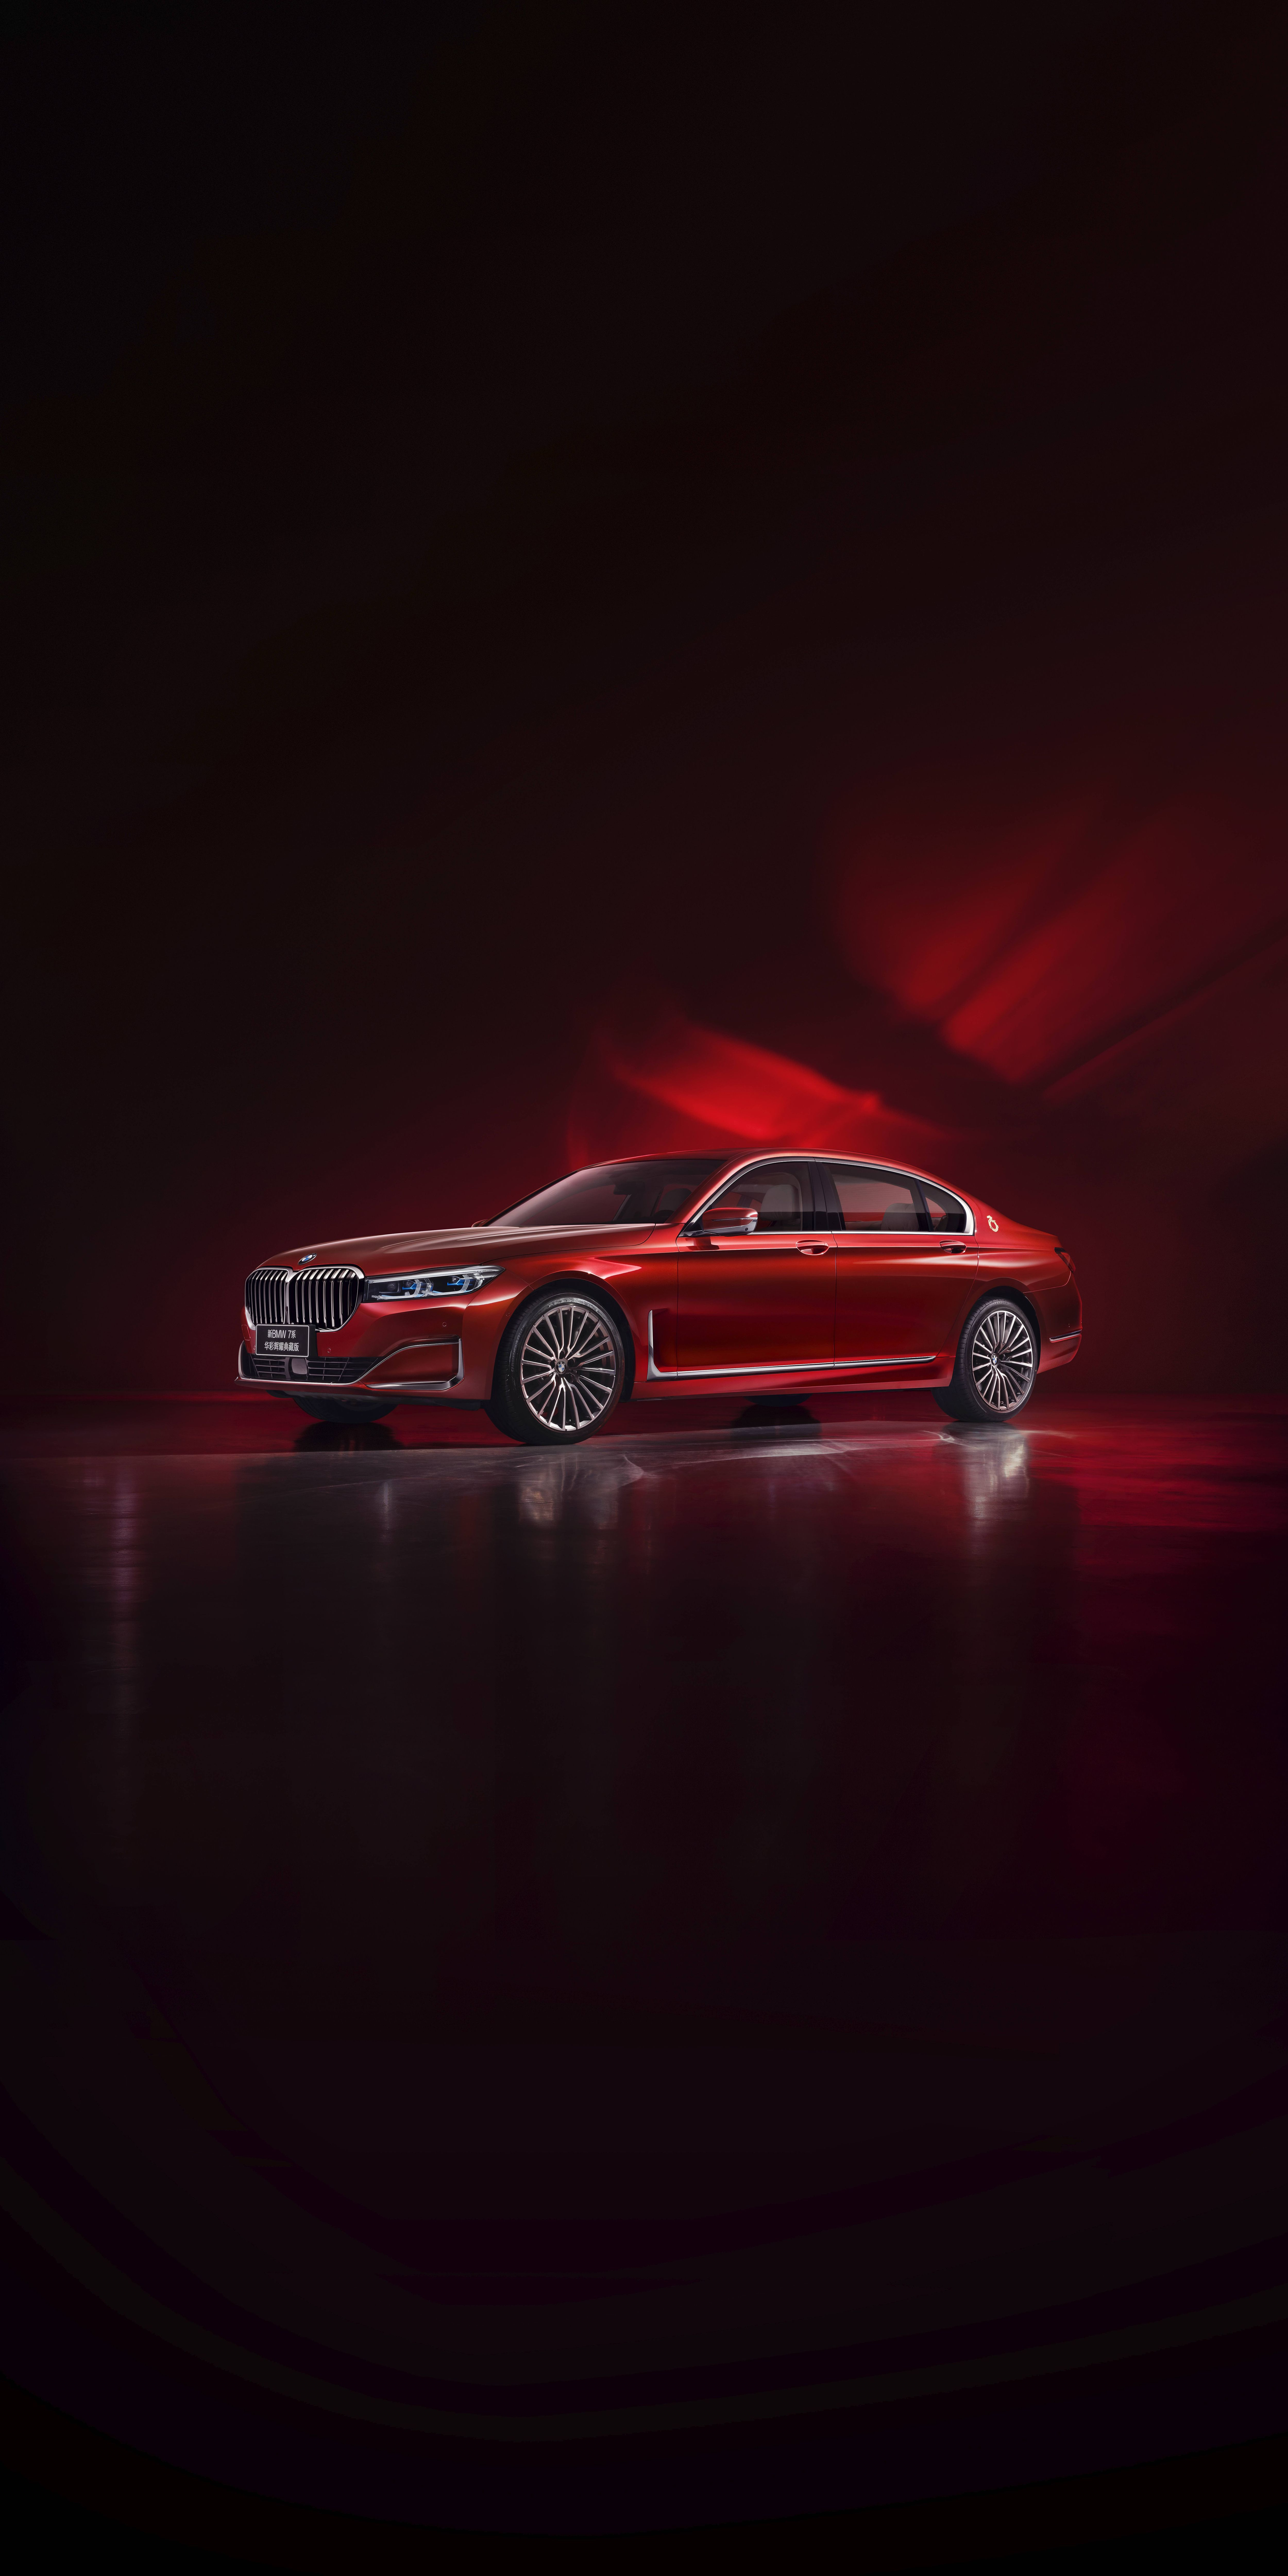 Determined to meet and bea. 2019 Bmw 7 Series Radiant Cadenza Immaculate Edition Bmw 7 Series Car Wallpapers Sports Cars Luxury